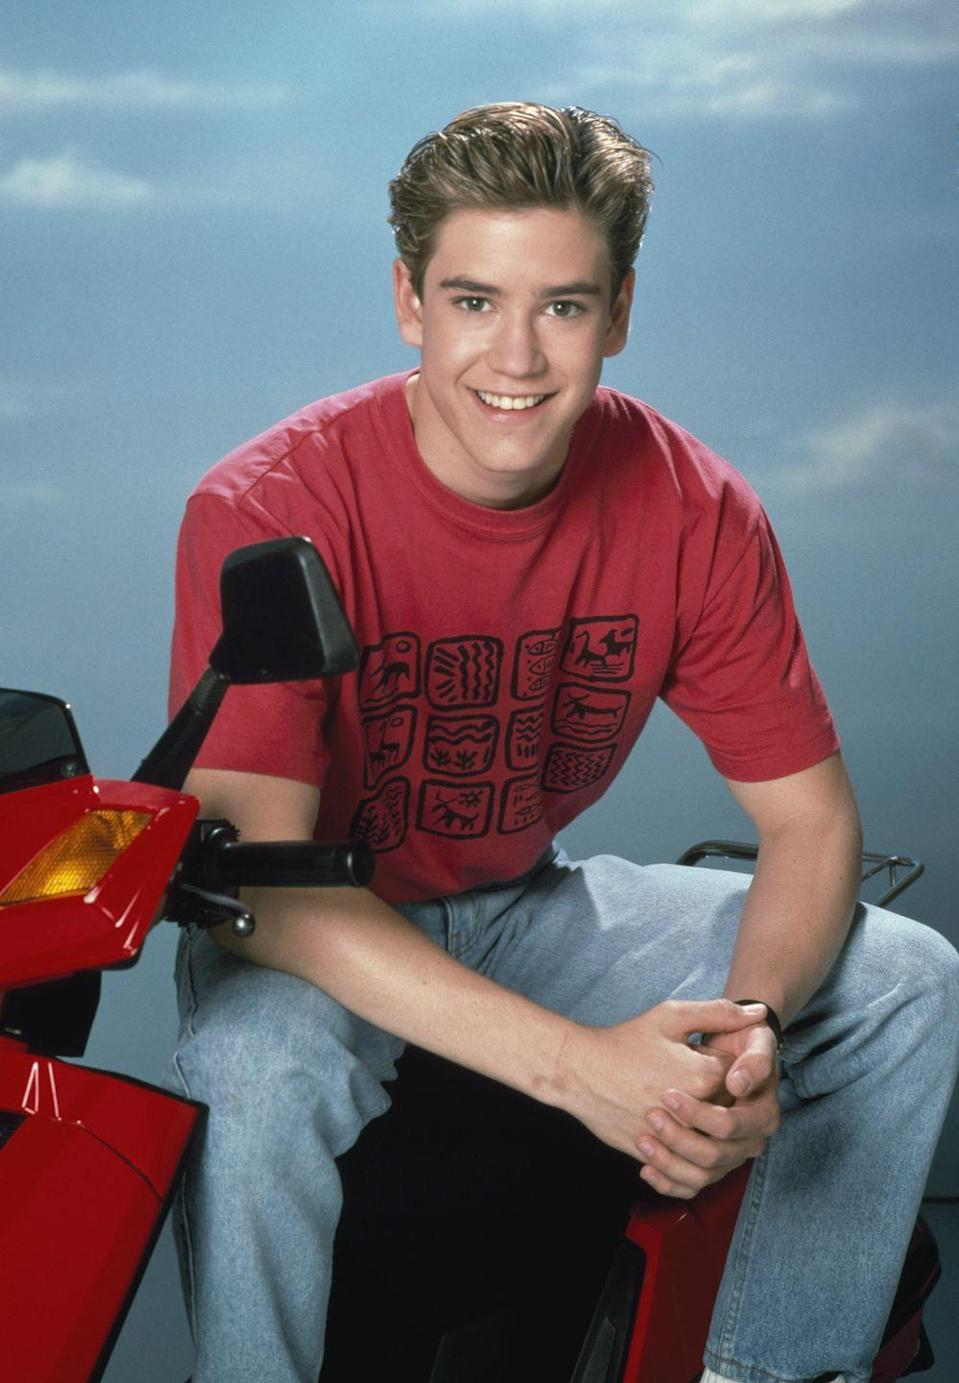 <p><em>Saved by the Bell</em> would be nothing without Mark-Paul Gosselaar as the ever-so-charming Zack Morris. The idea of someone else ending up with Kelly Kapowski sends shivers down my spine. </p>